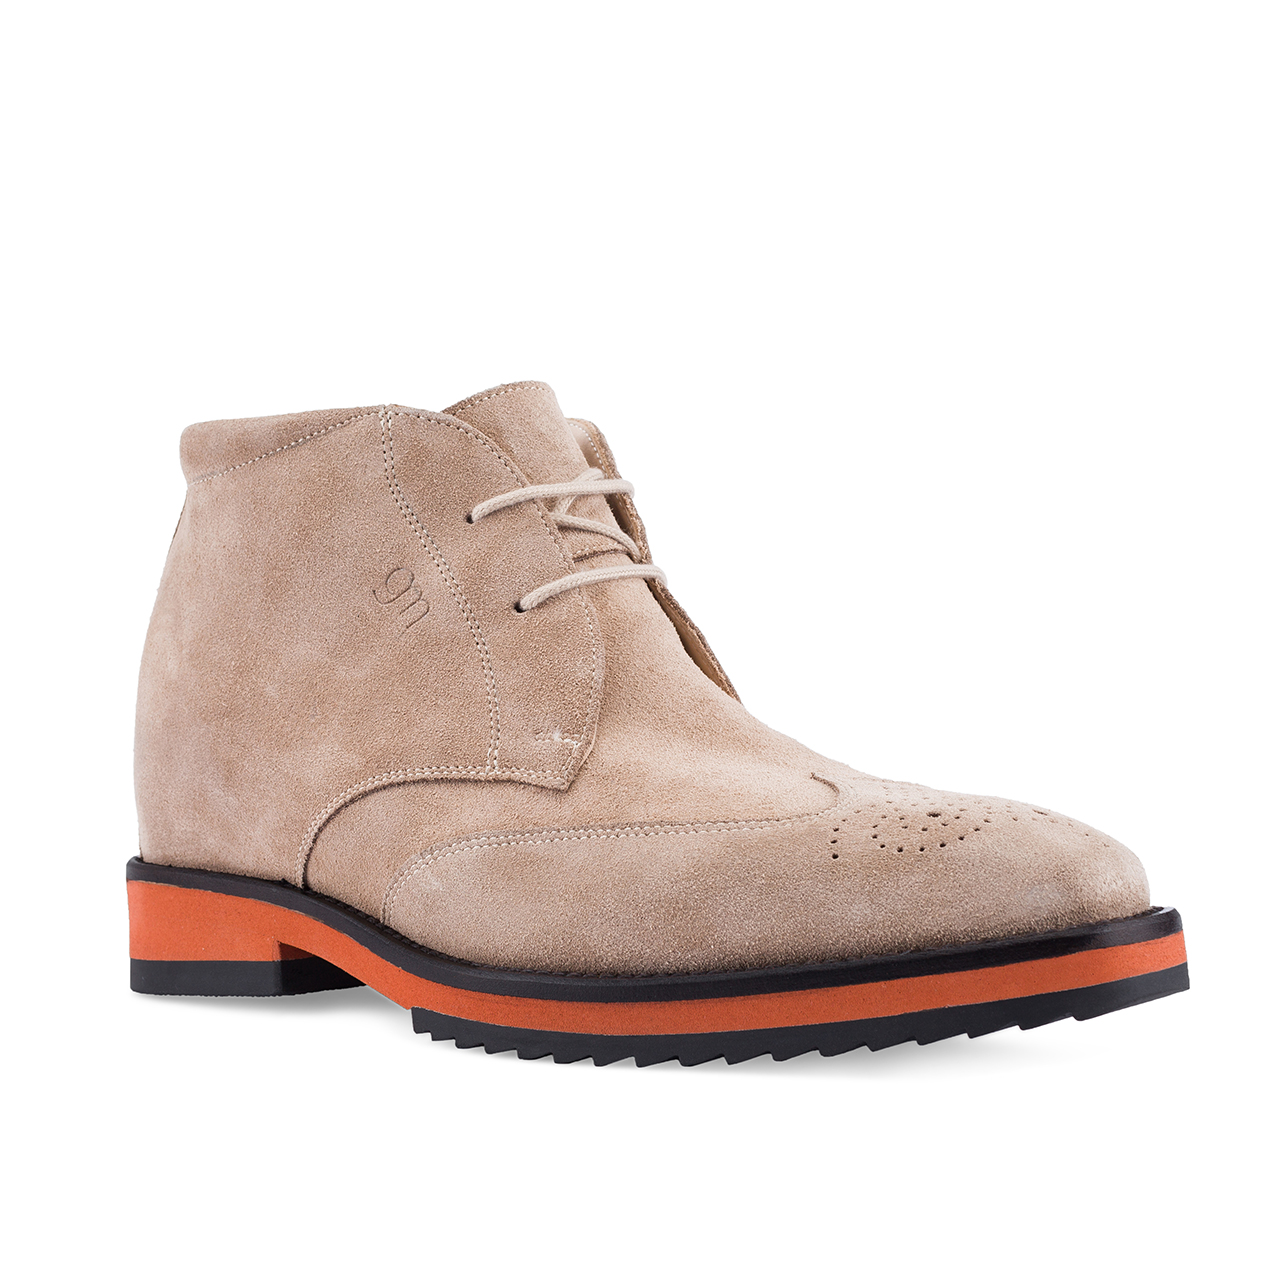 Free shipping BOTH ways on Shoes, from our vast selection of styles. Fast delivery, and 24/7/ real-person service with a smile. Click or call